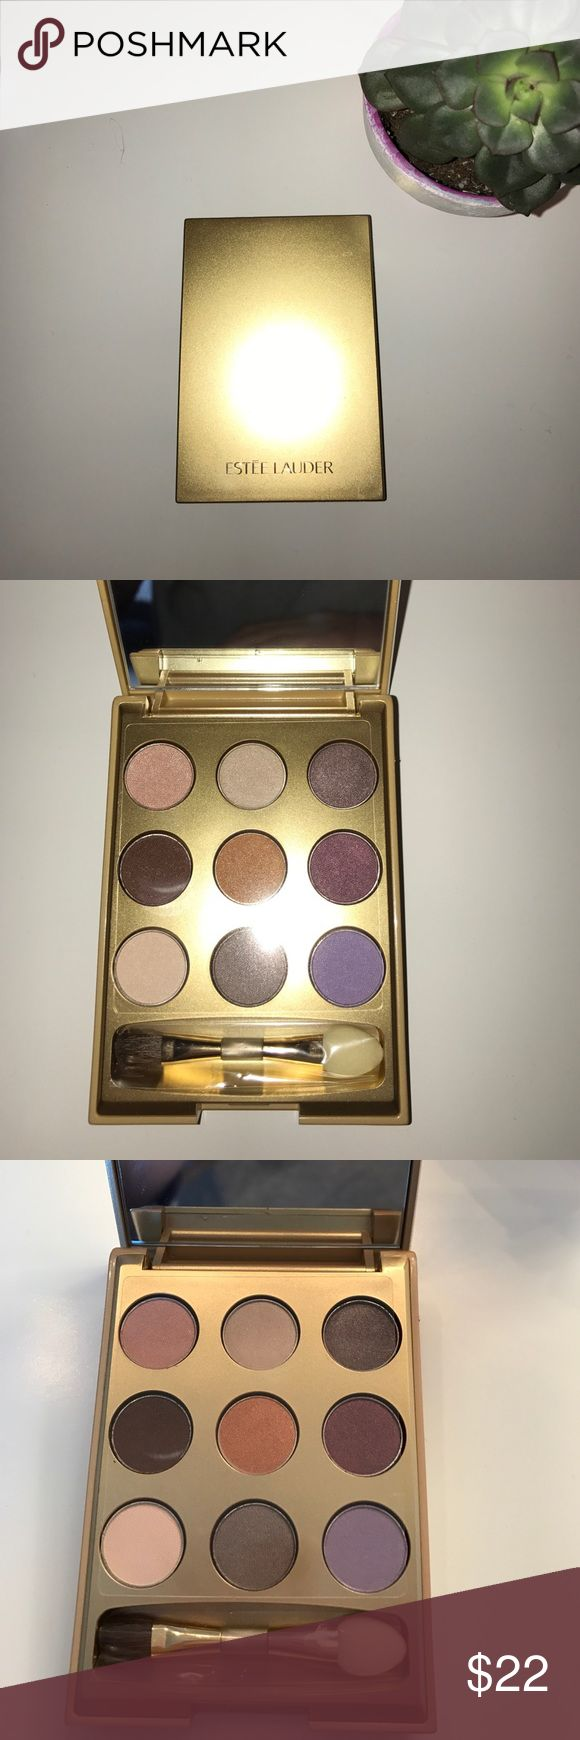 Estée Lauder pure color eyeshadow palette Brand new, new used! Beautiful color options! Please make an offer! Estee Lauder Makeup Eyeshadow